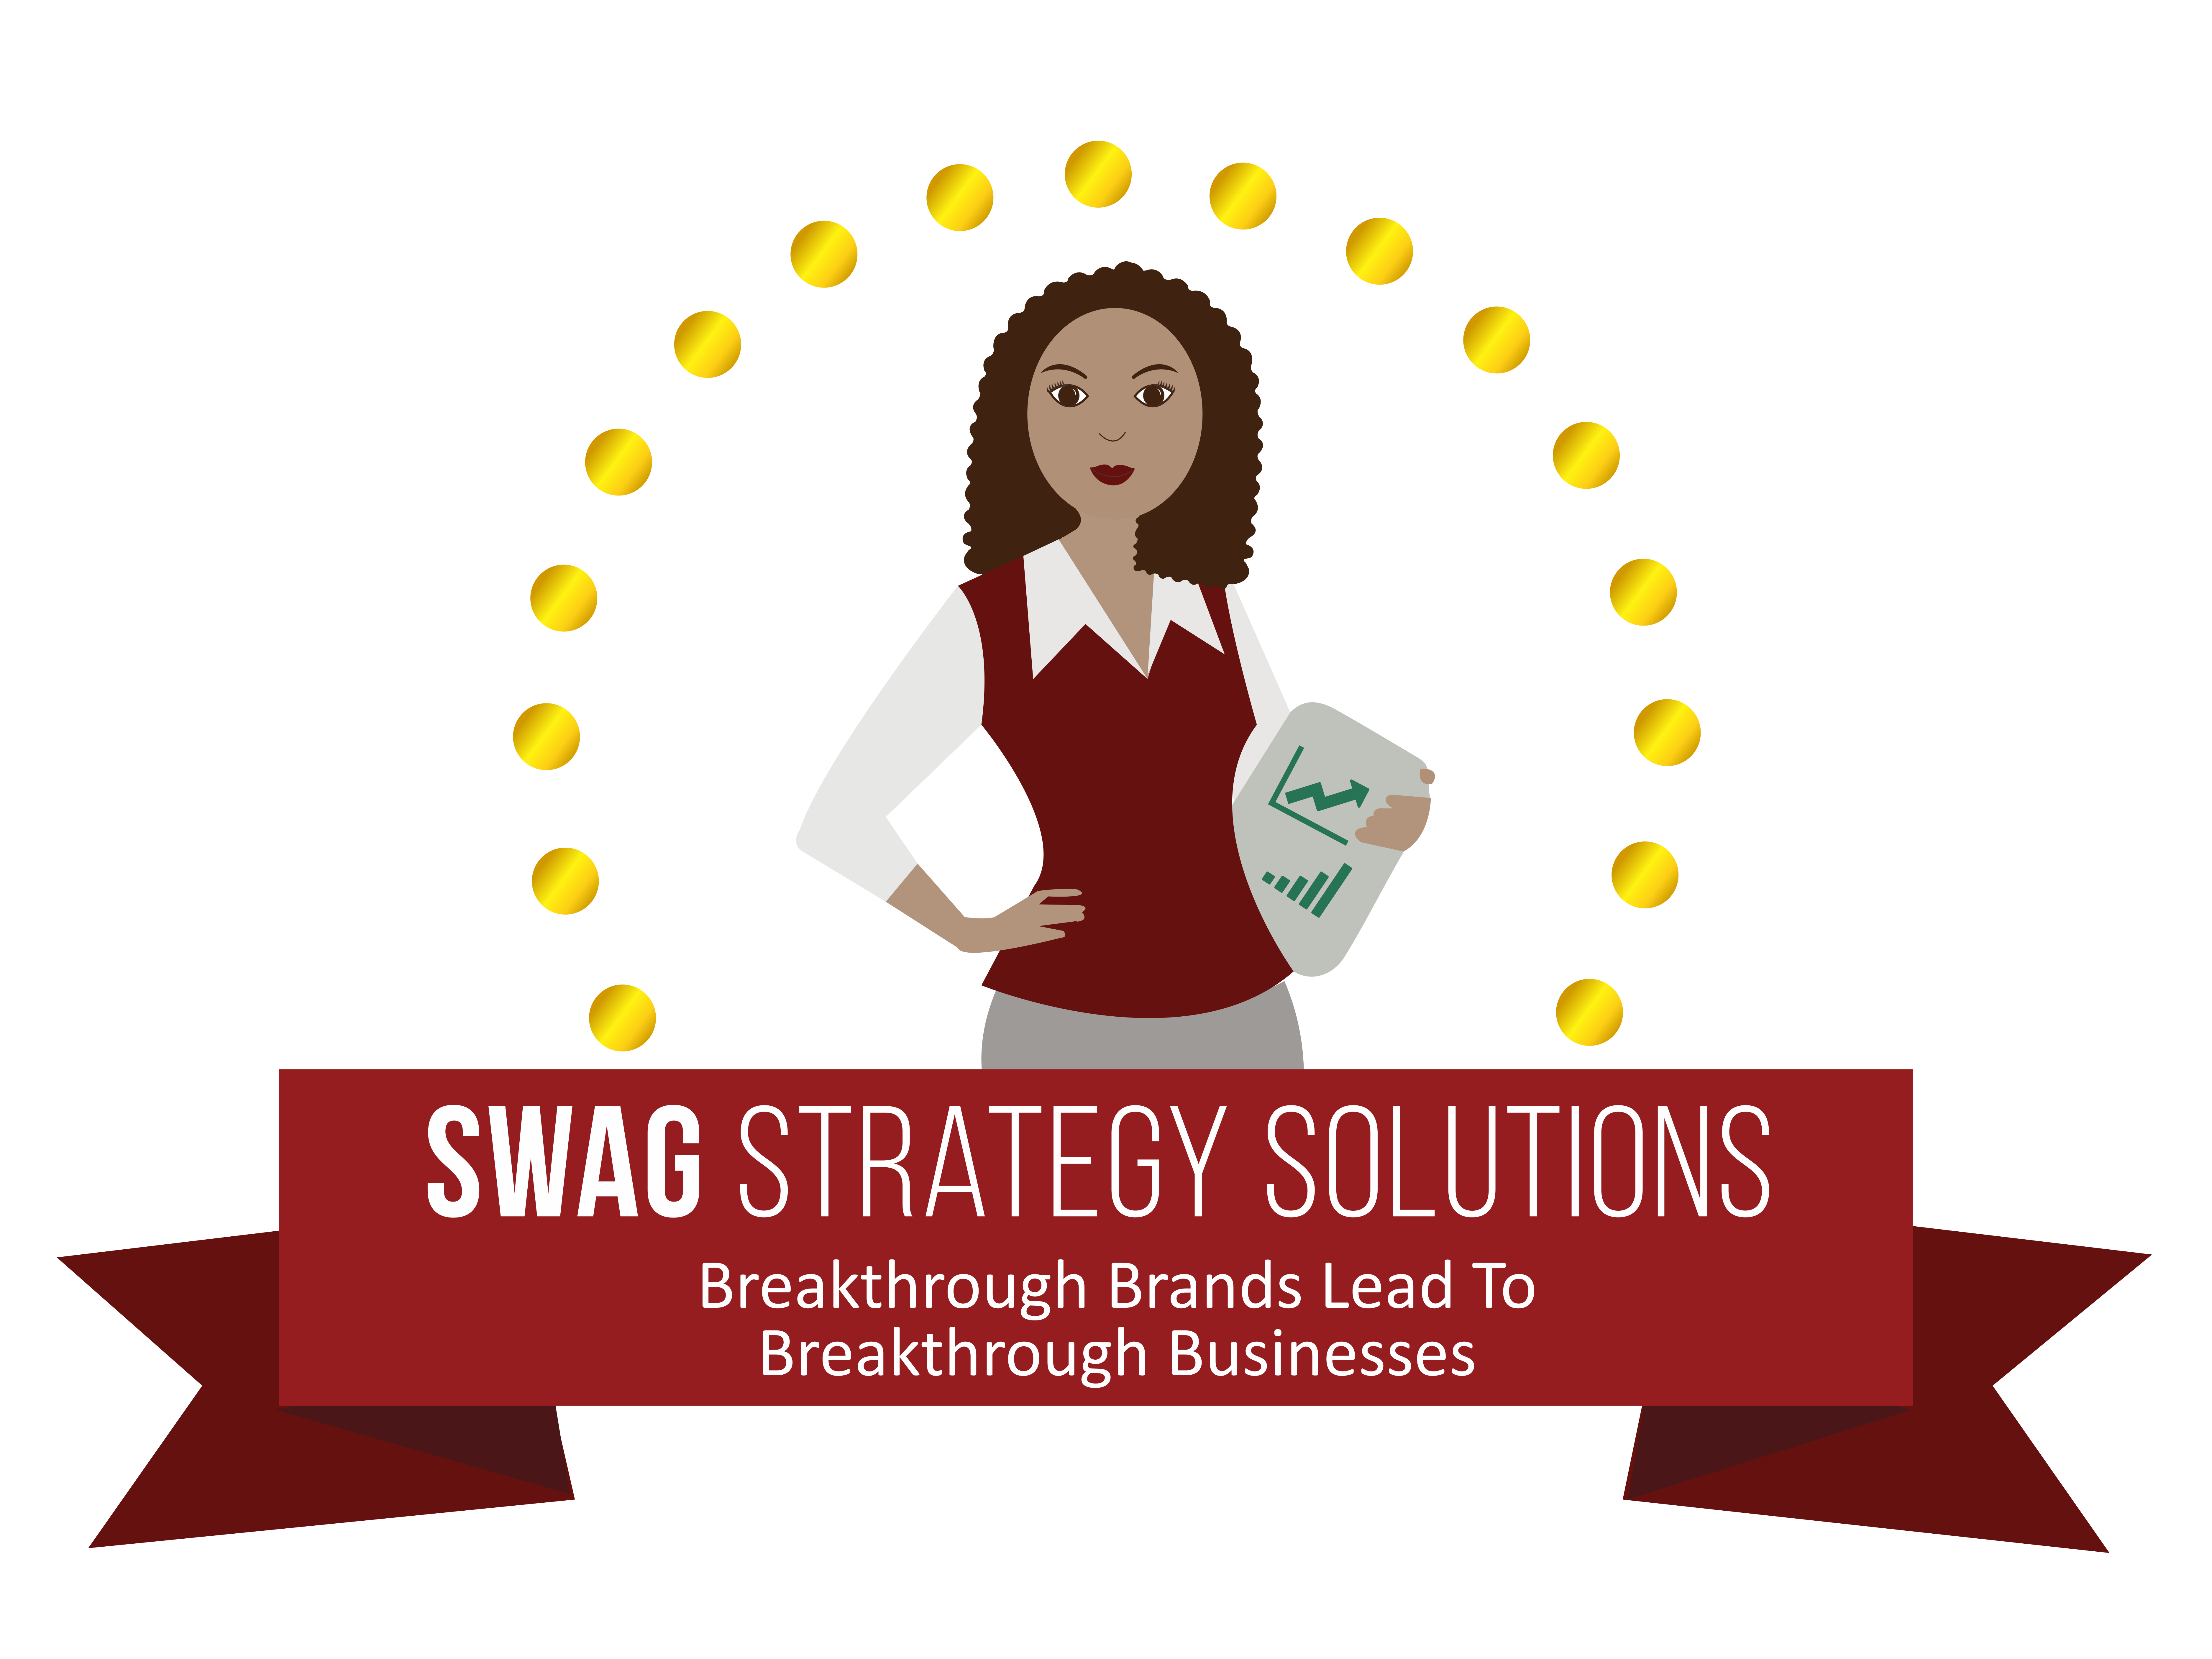 More Effective Brand Strategy, Business and Marketing SWAG